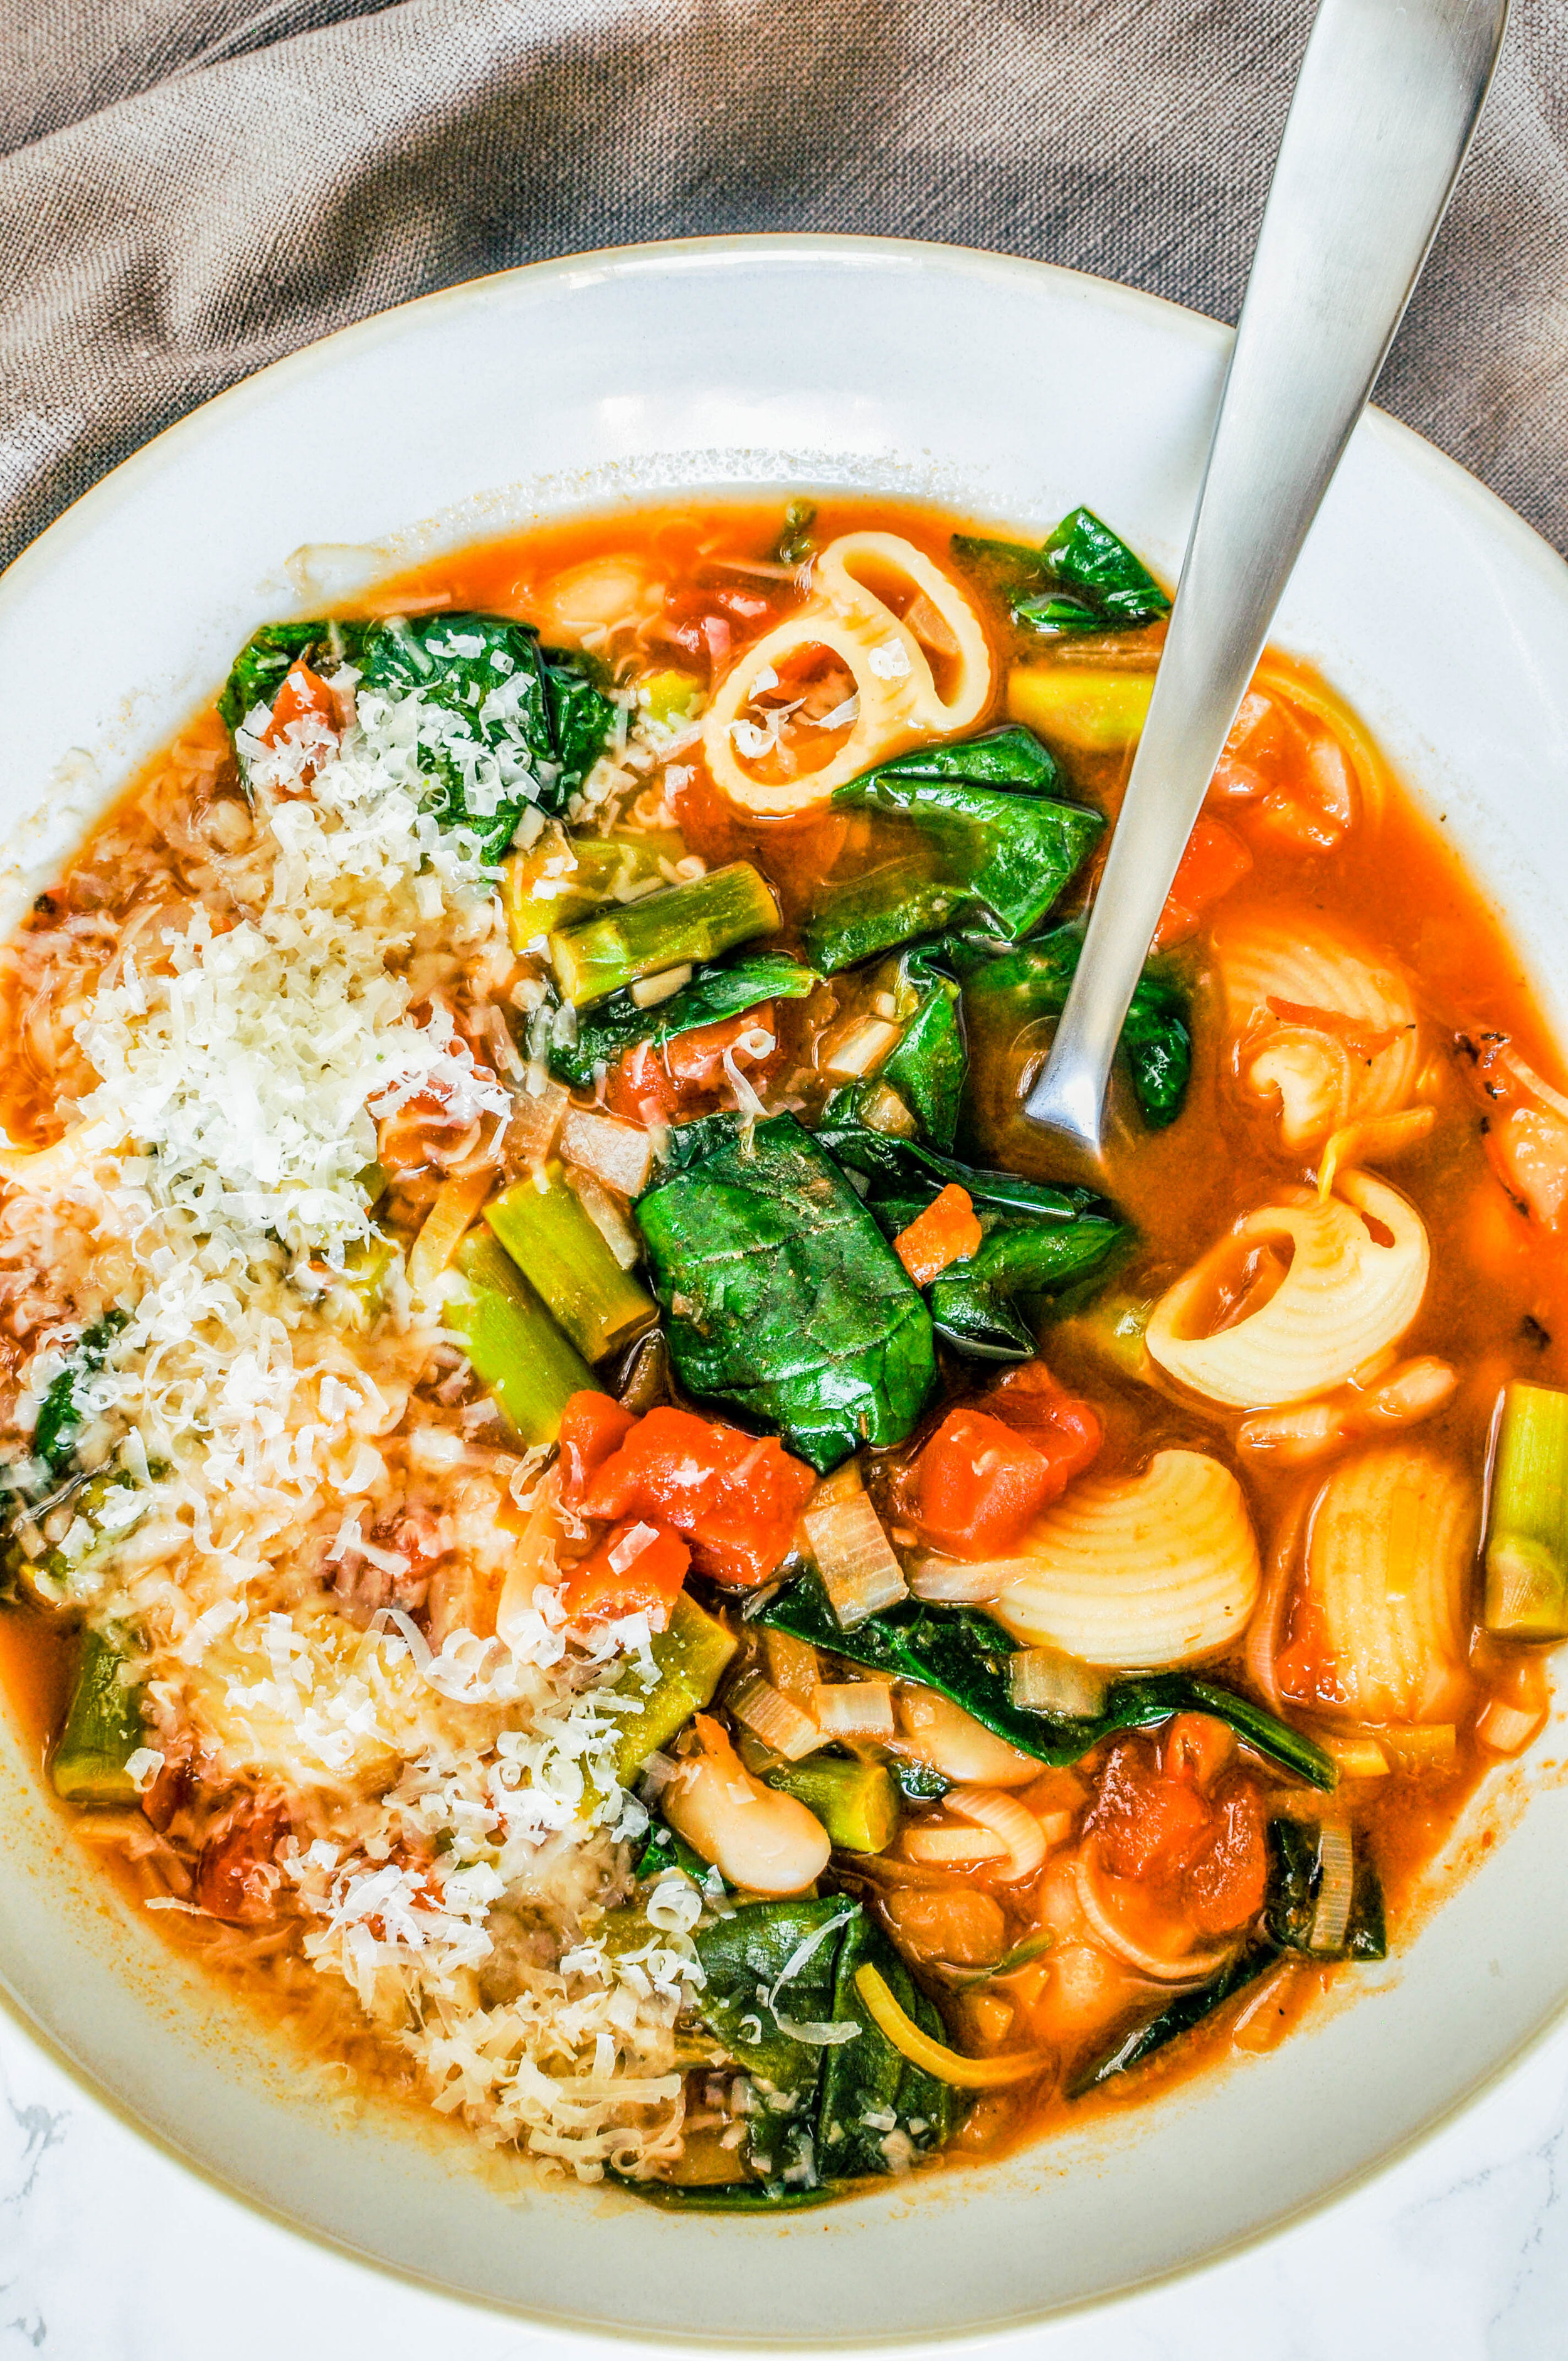 Springtime Minestrone Soup - a delicious, vegetarian dinner recipe.